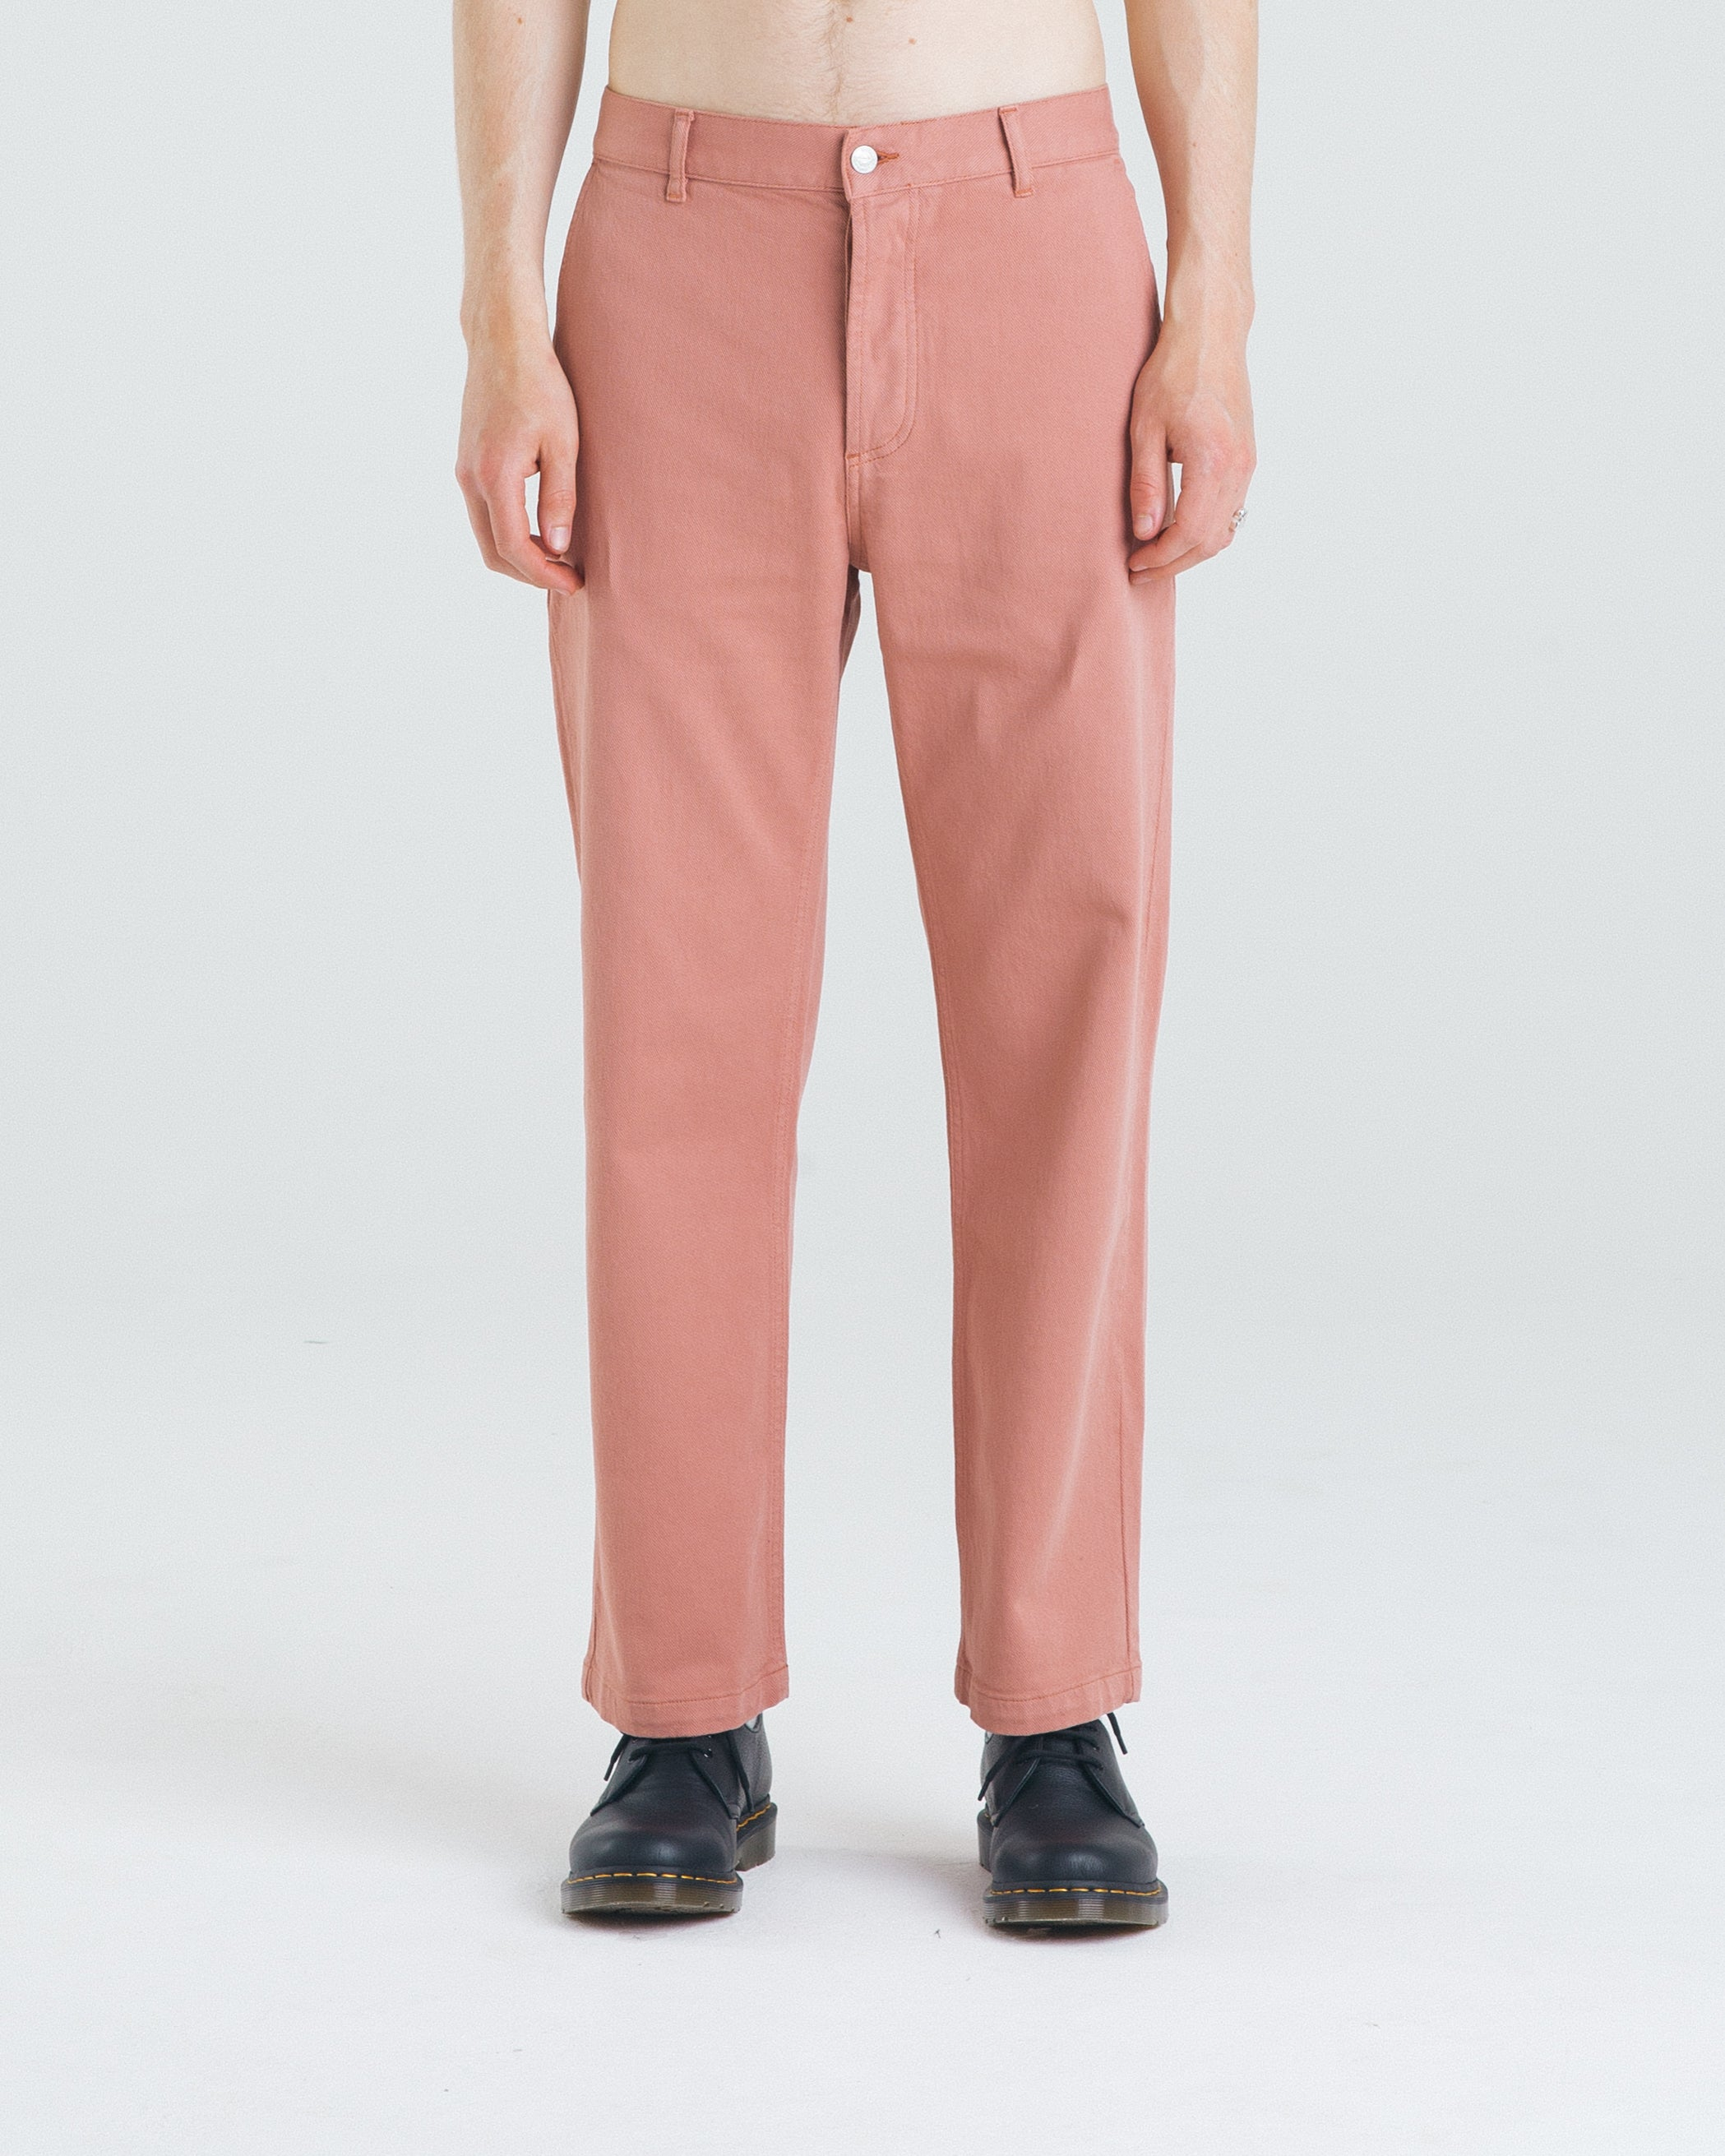 Dusty Pink Twill Pants